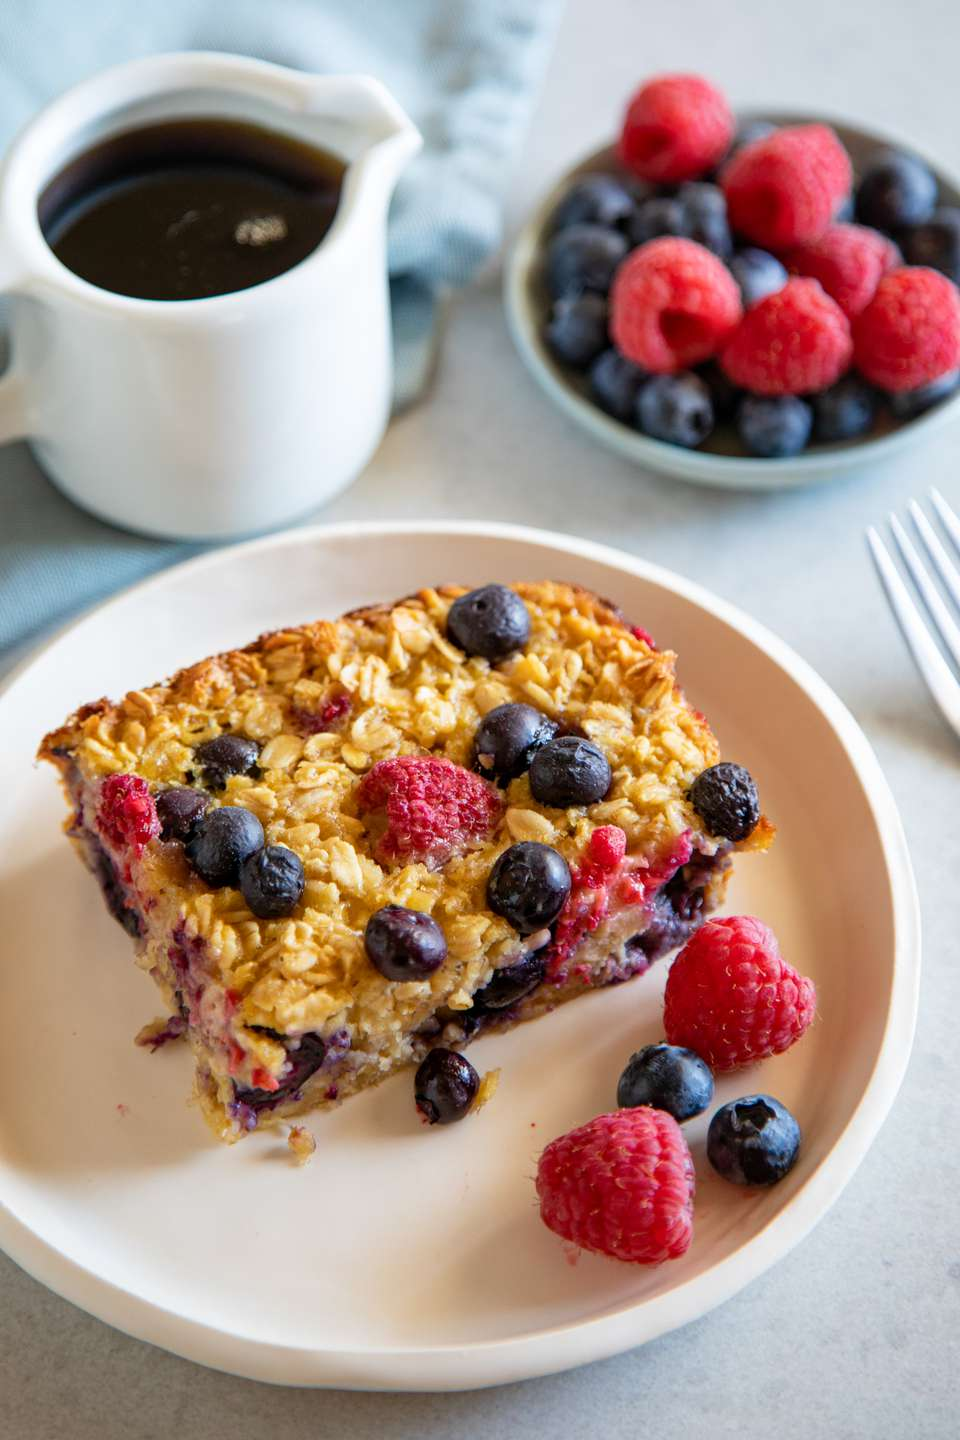 Baked Oatmeal Bars served on a plate and topped with berries with maple syrup and extra berries set behind the plate.